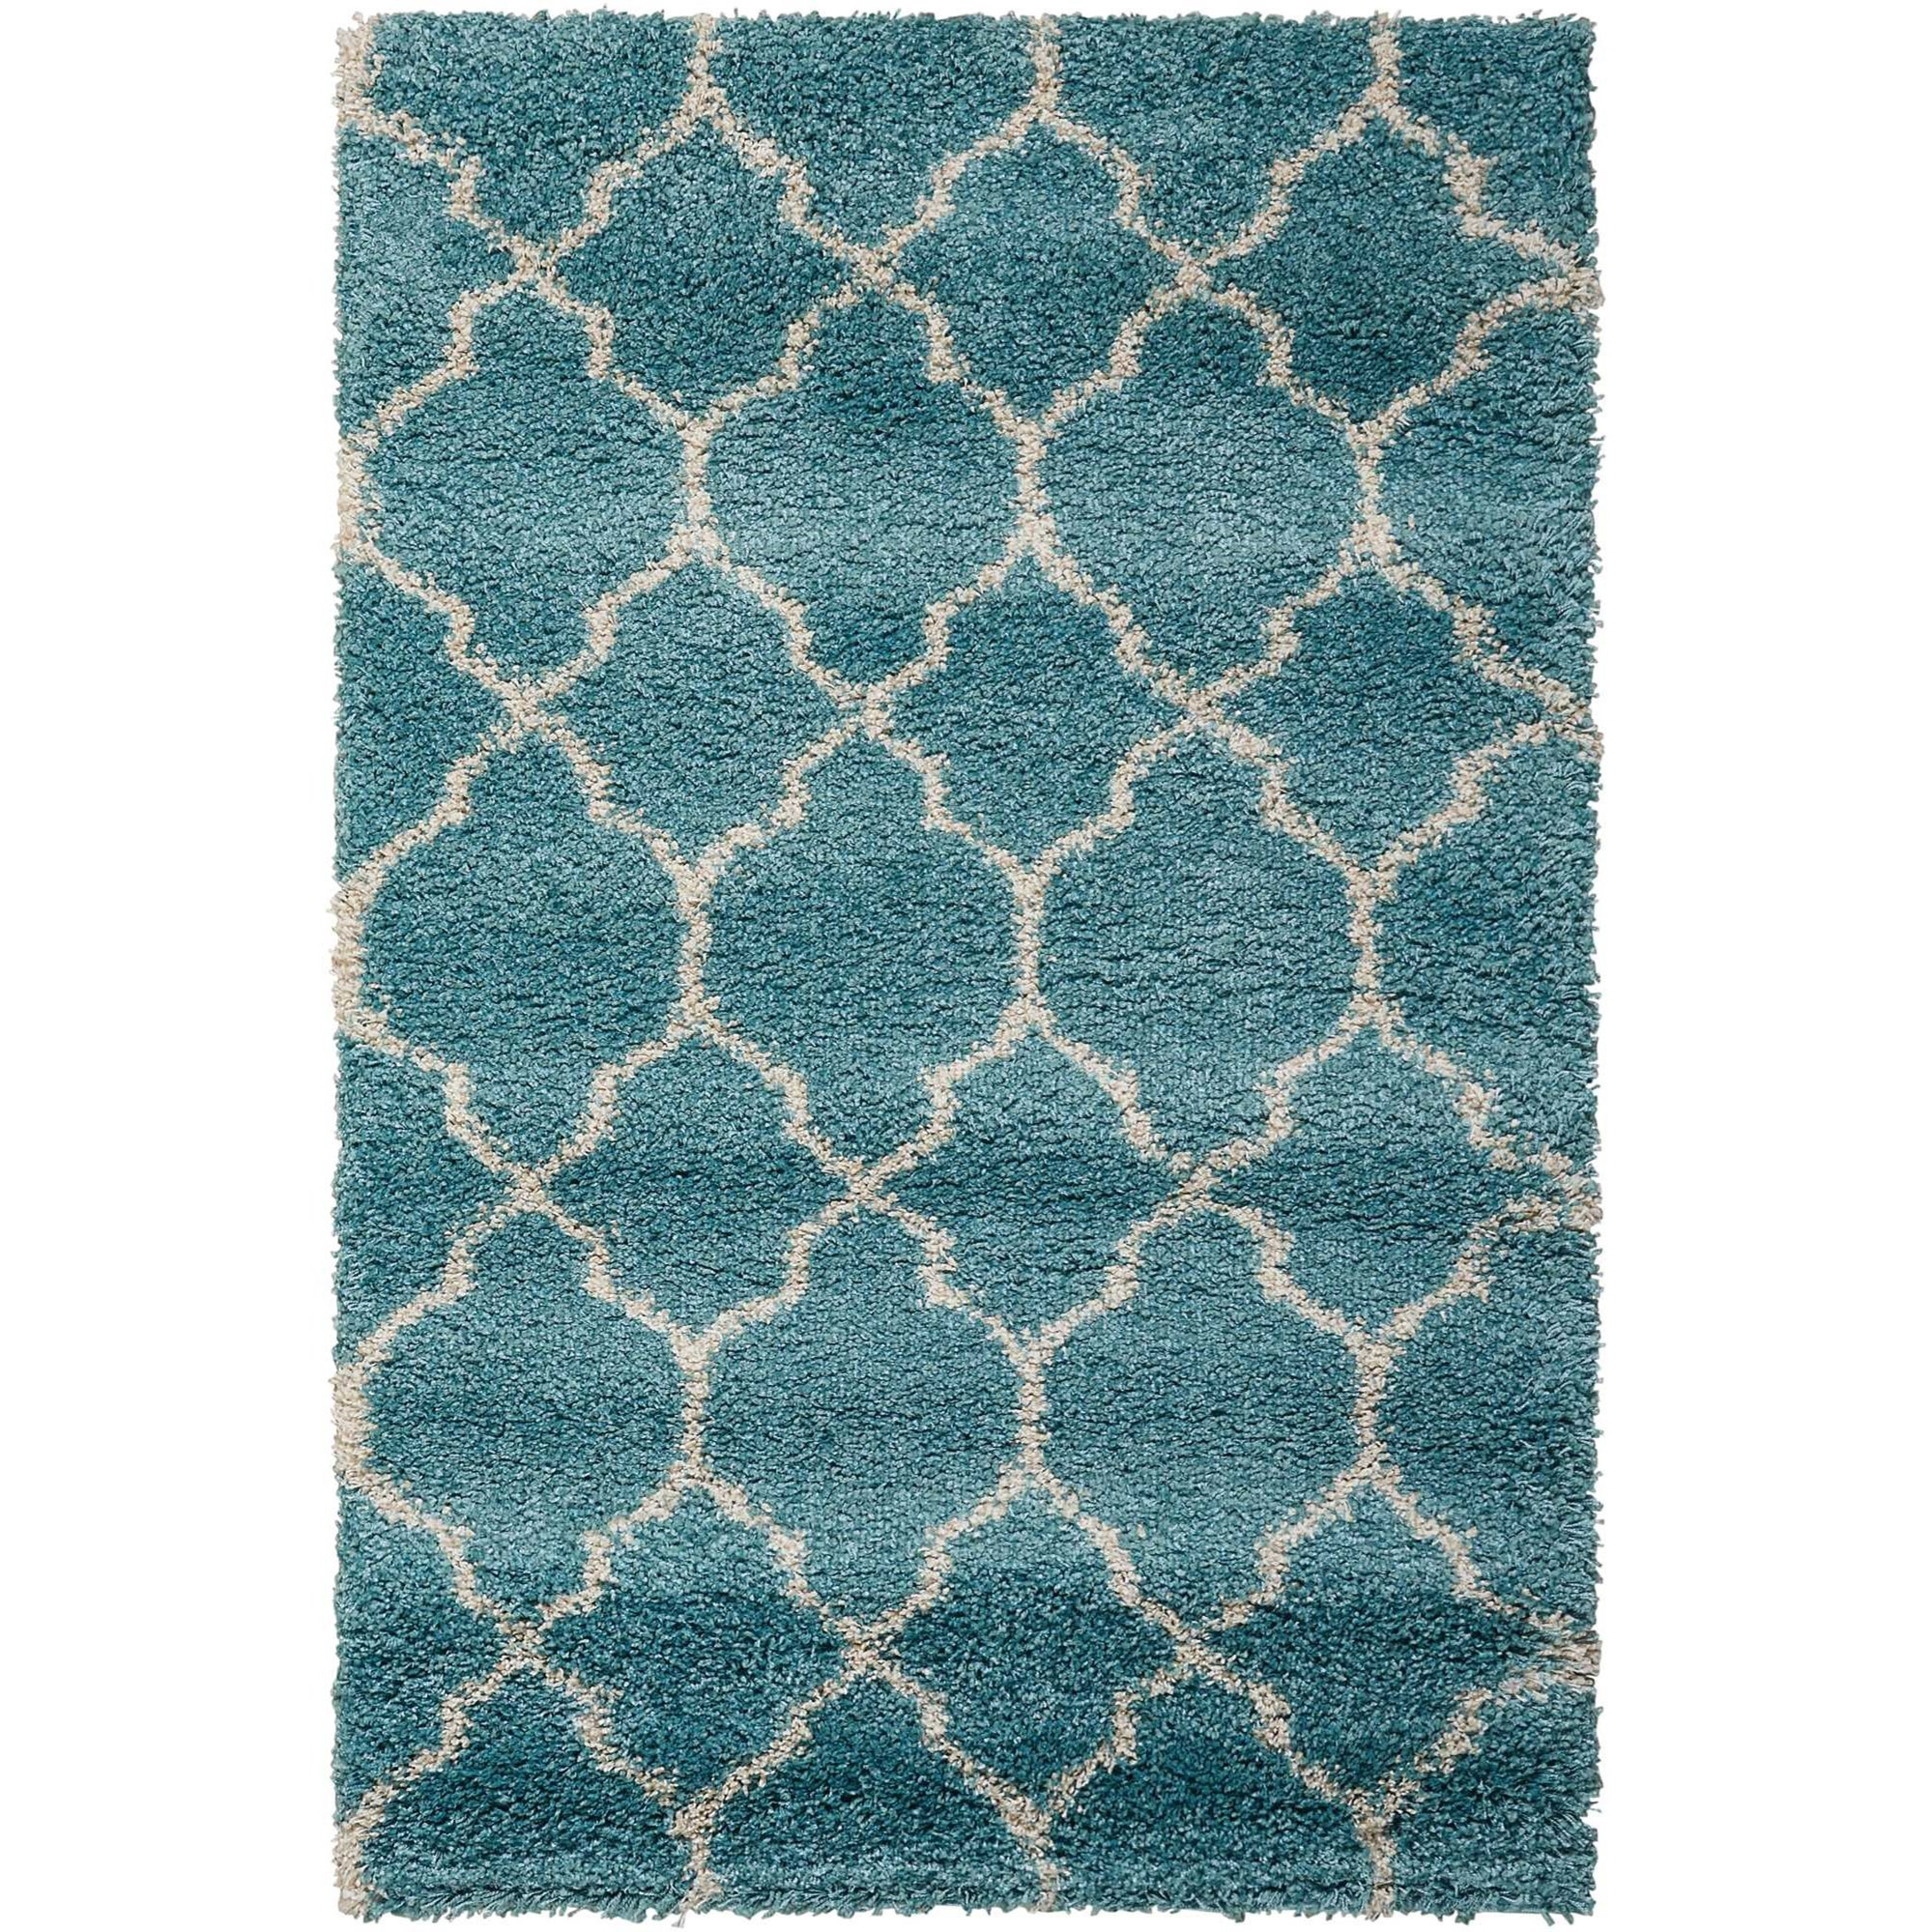 """Amore 3'2"""" x 5' Aqua Rectangle Rug by Nourison at Home Collections Furniture"""